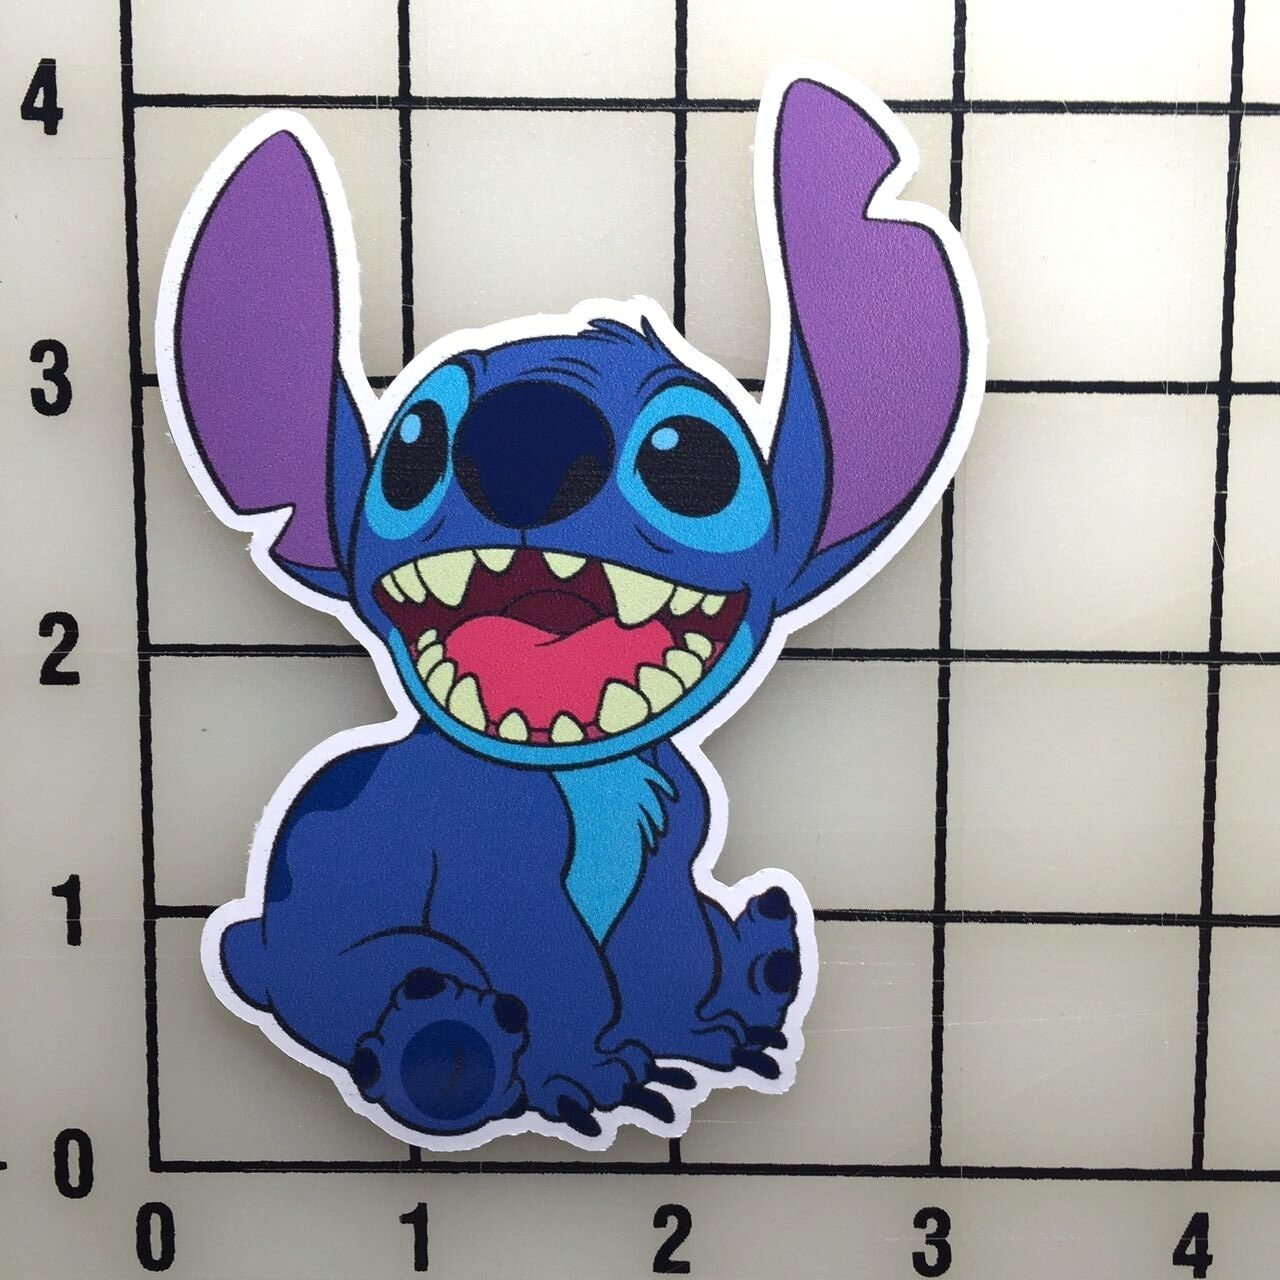 "Stitch 4"" Tall Color Vinyl Decal Sticker - BOGO"